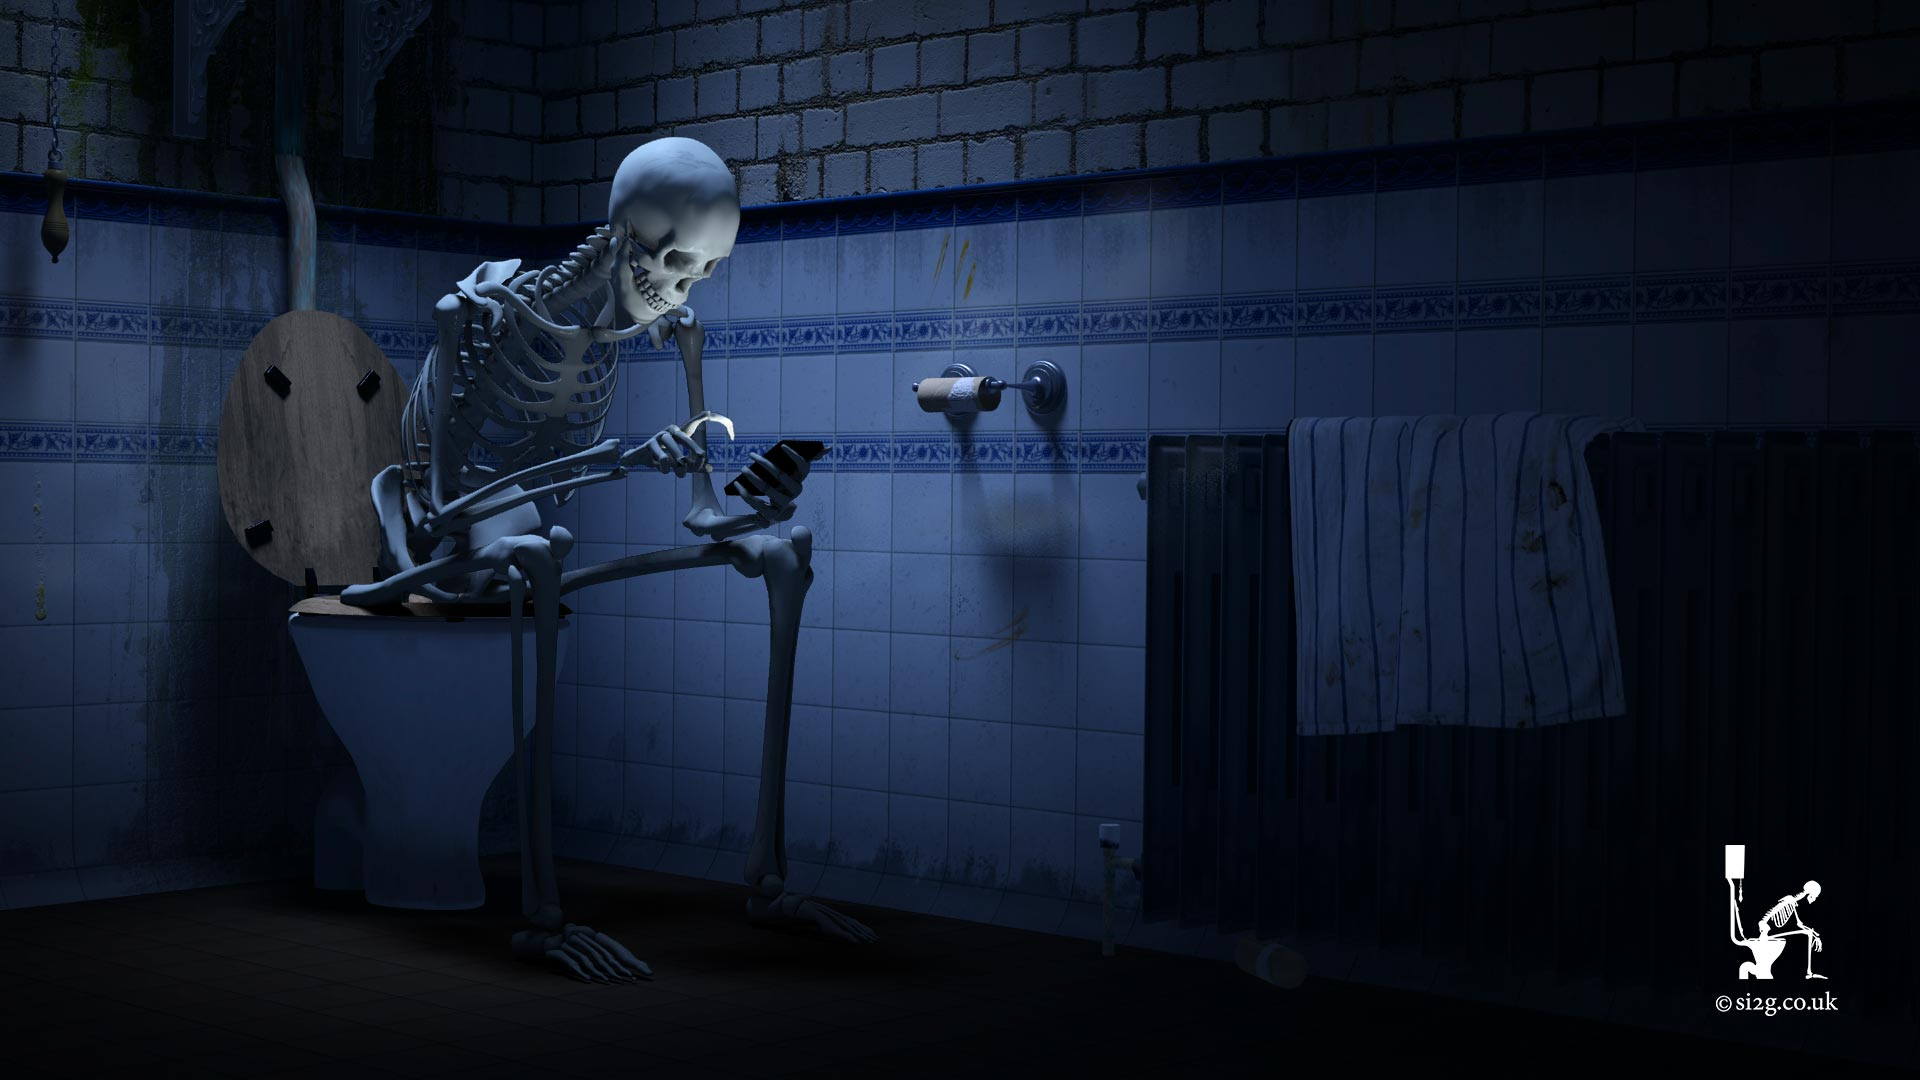 Skeleton on the Toilet - A frame from the Official S.i.2.G. company branding animation.  This concept was first developed in 1998 and was my company branding animation on the beginning of all the skateboard videos I made.  I wanted an animation that would become synonymous with my videos, like the search light branding animation 20th Century Fox have.  In 2004 I became self-employed in the TV post-production industry and launched S.i.2.G. using the same branding.  I continue to use the branding to this day and, every now and then, I update the animation using newer computer systems, software and techniques.